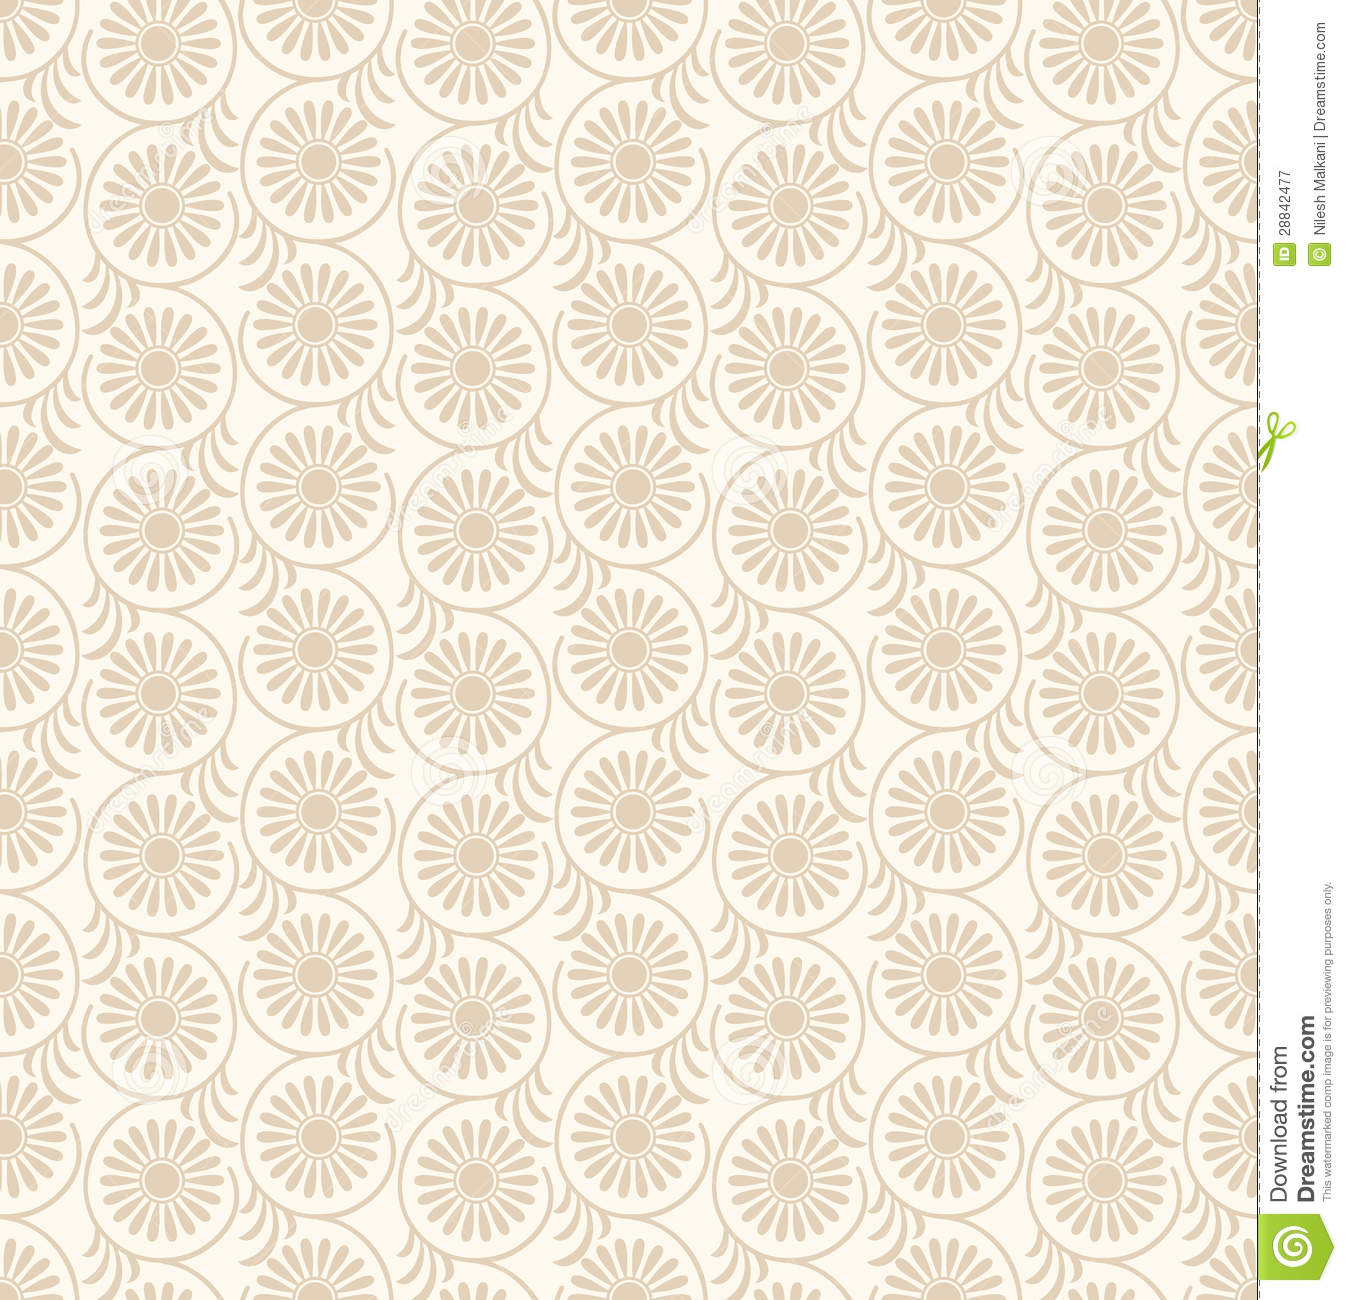 Seamless-Floral Wedding Card Background Royalty Free Stock ...